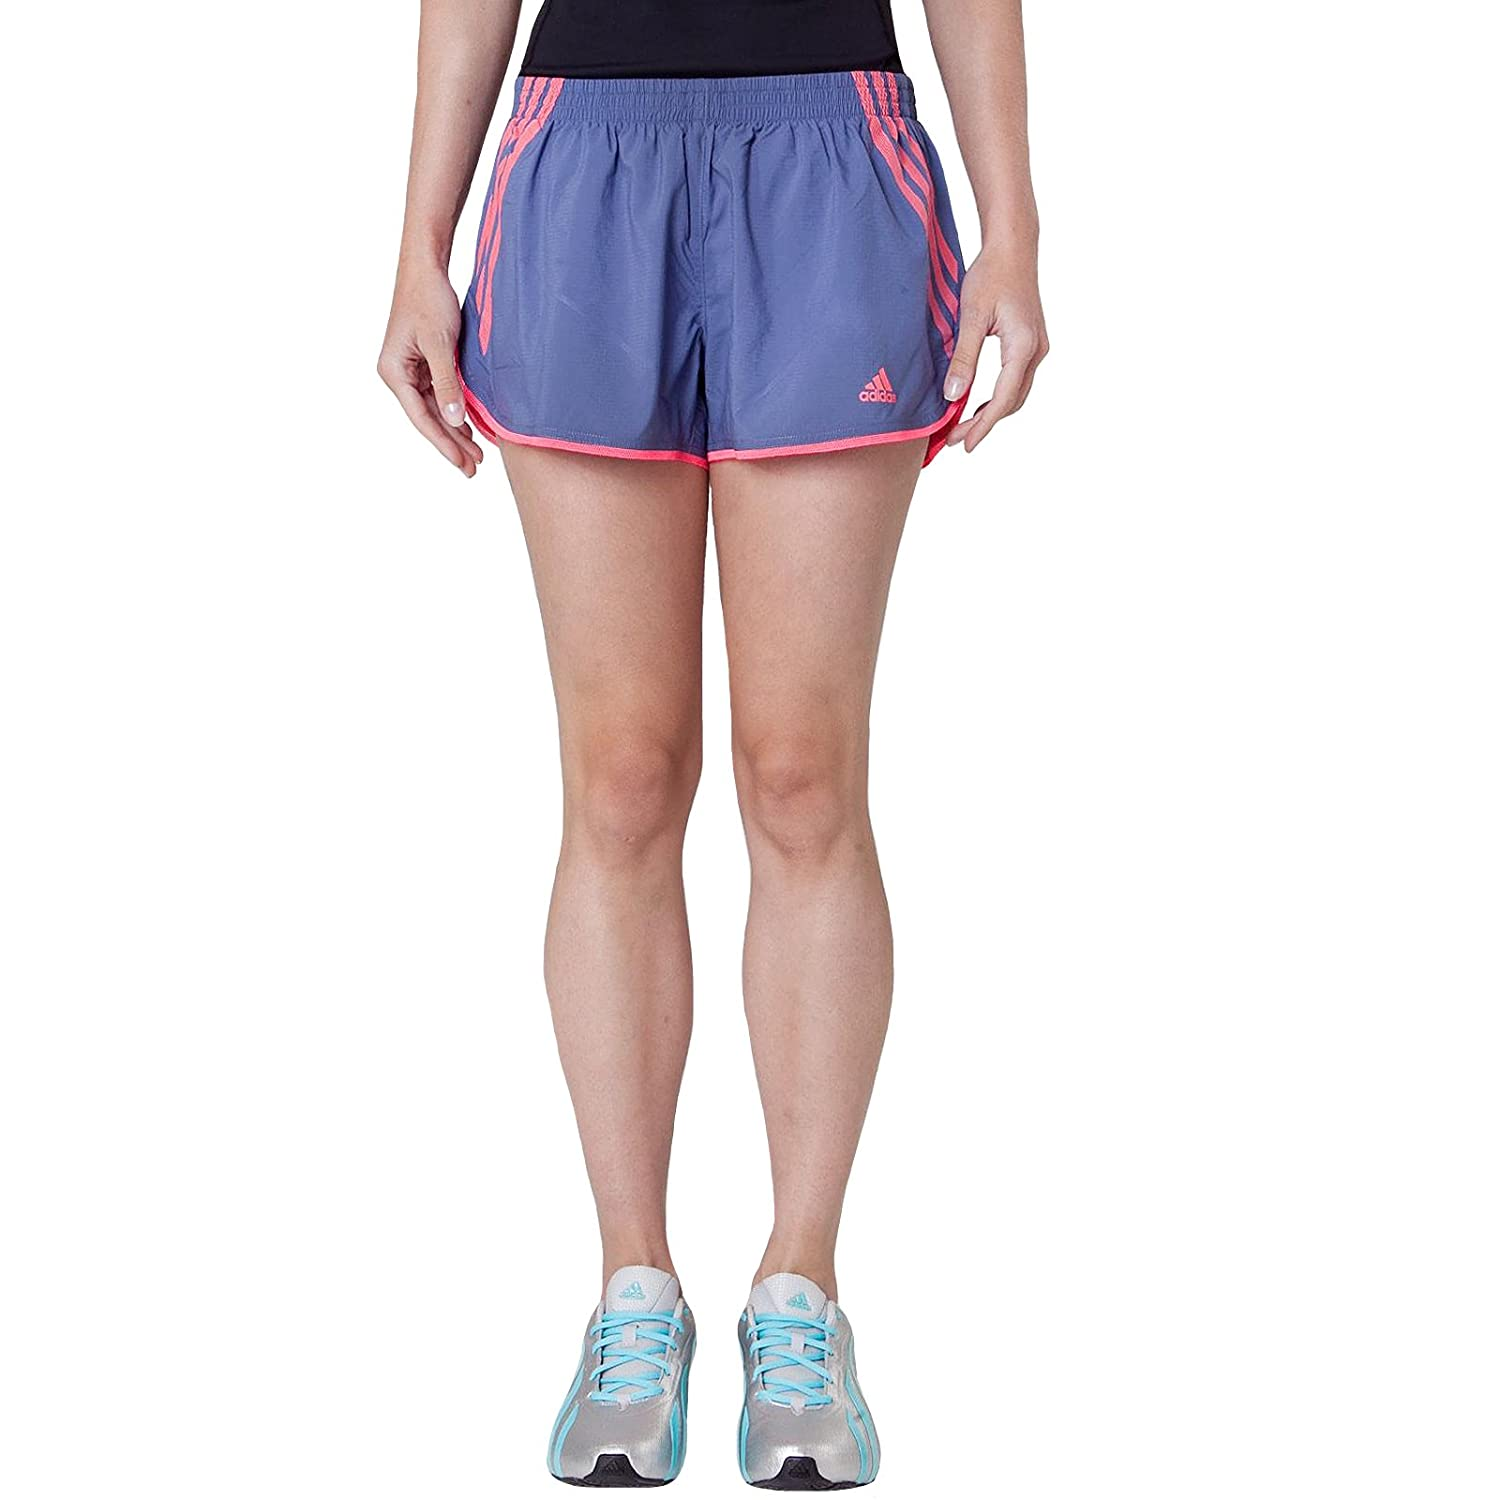 Adidas Lady Adizero Split Running Shorts - Small